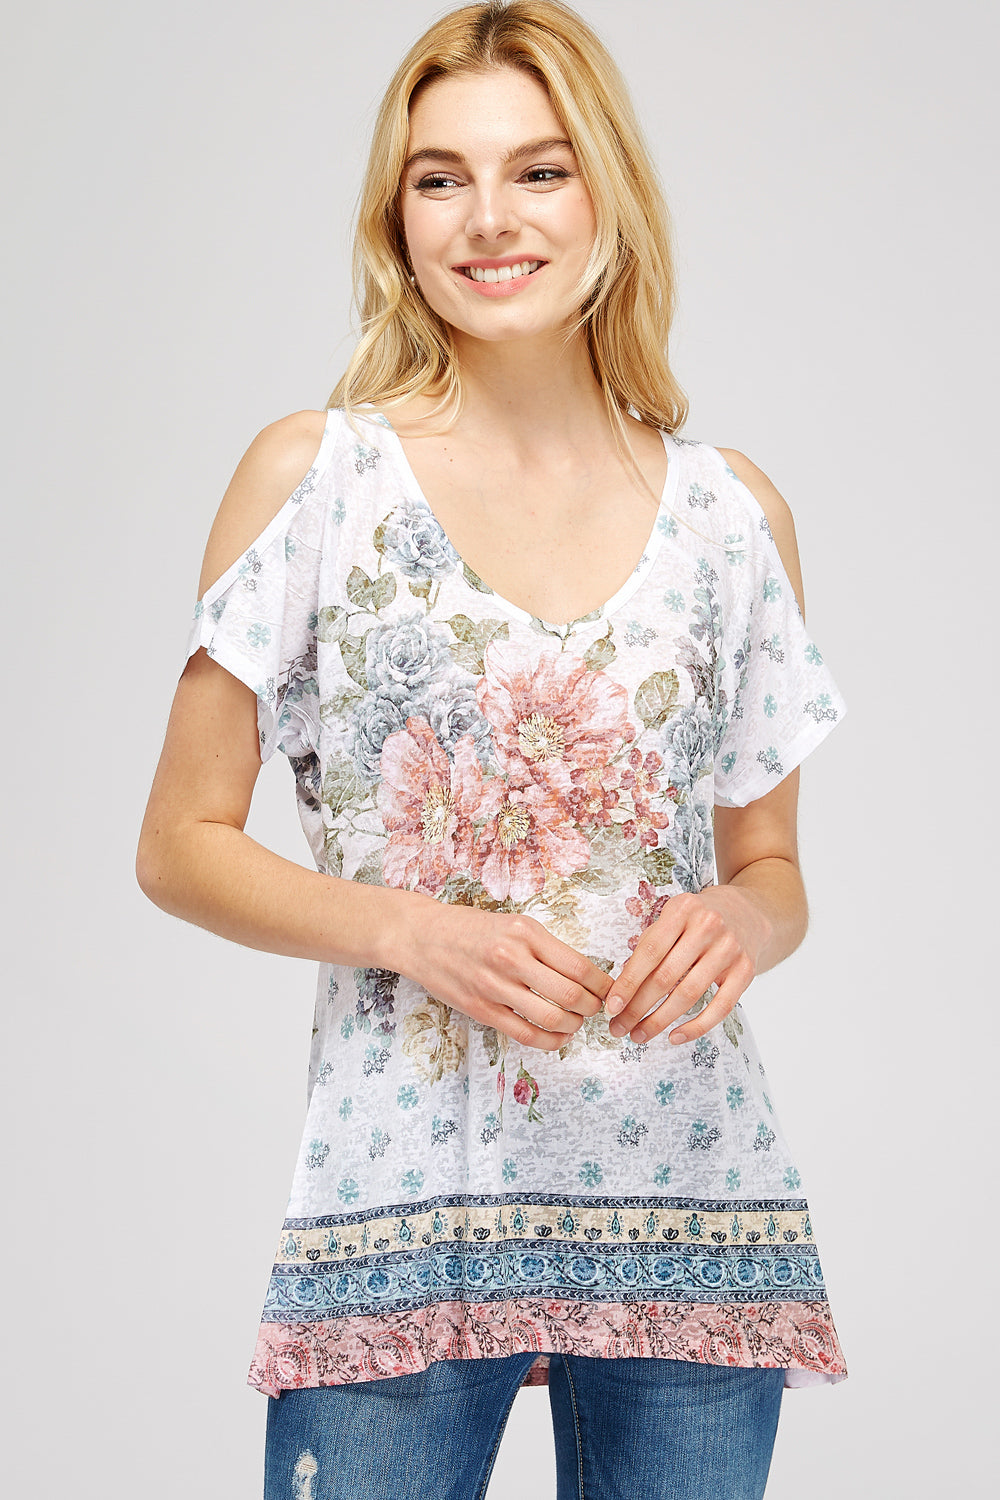 Wholesale Clothing, Online Wholesale Clothing, Women Clothing, Bohemian, Free People, tiedye, specialty wash, wholesale seller, wholesale women clothing shop, gypsy look, USA made, URBAN X PLUS-PLUS-UTSP3306, fashiontrend2019